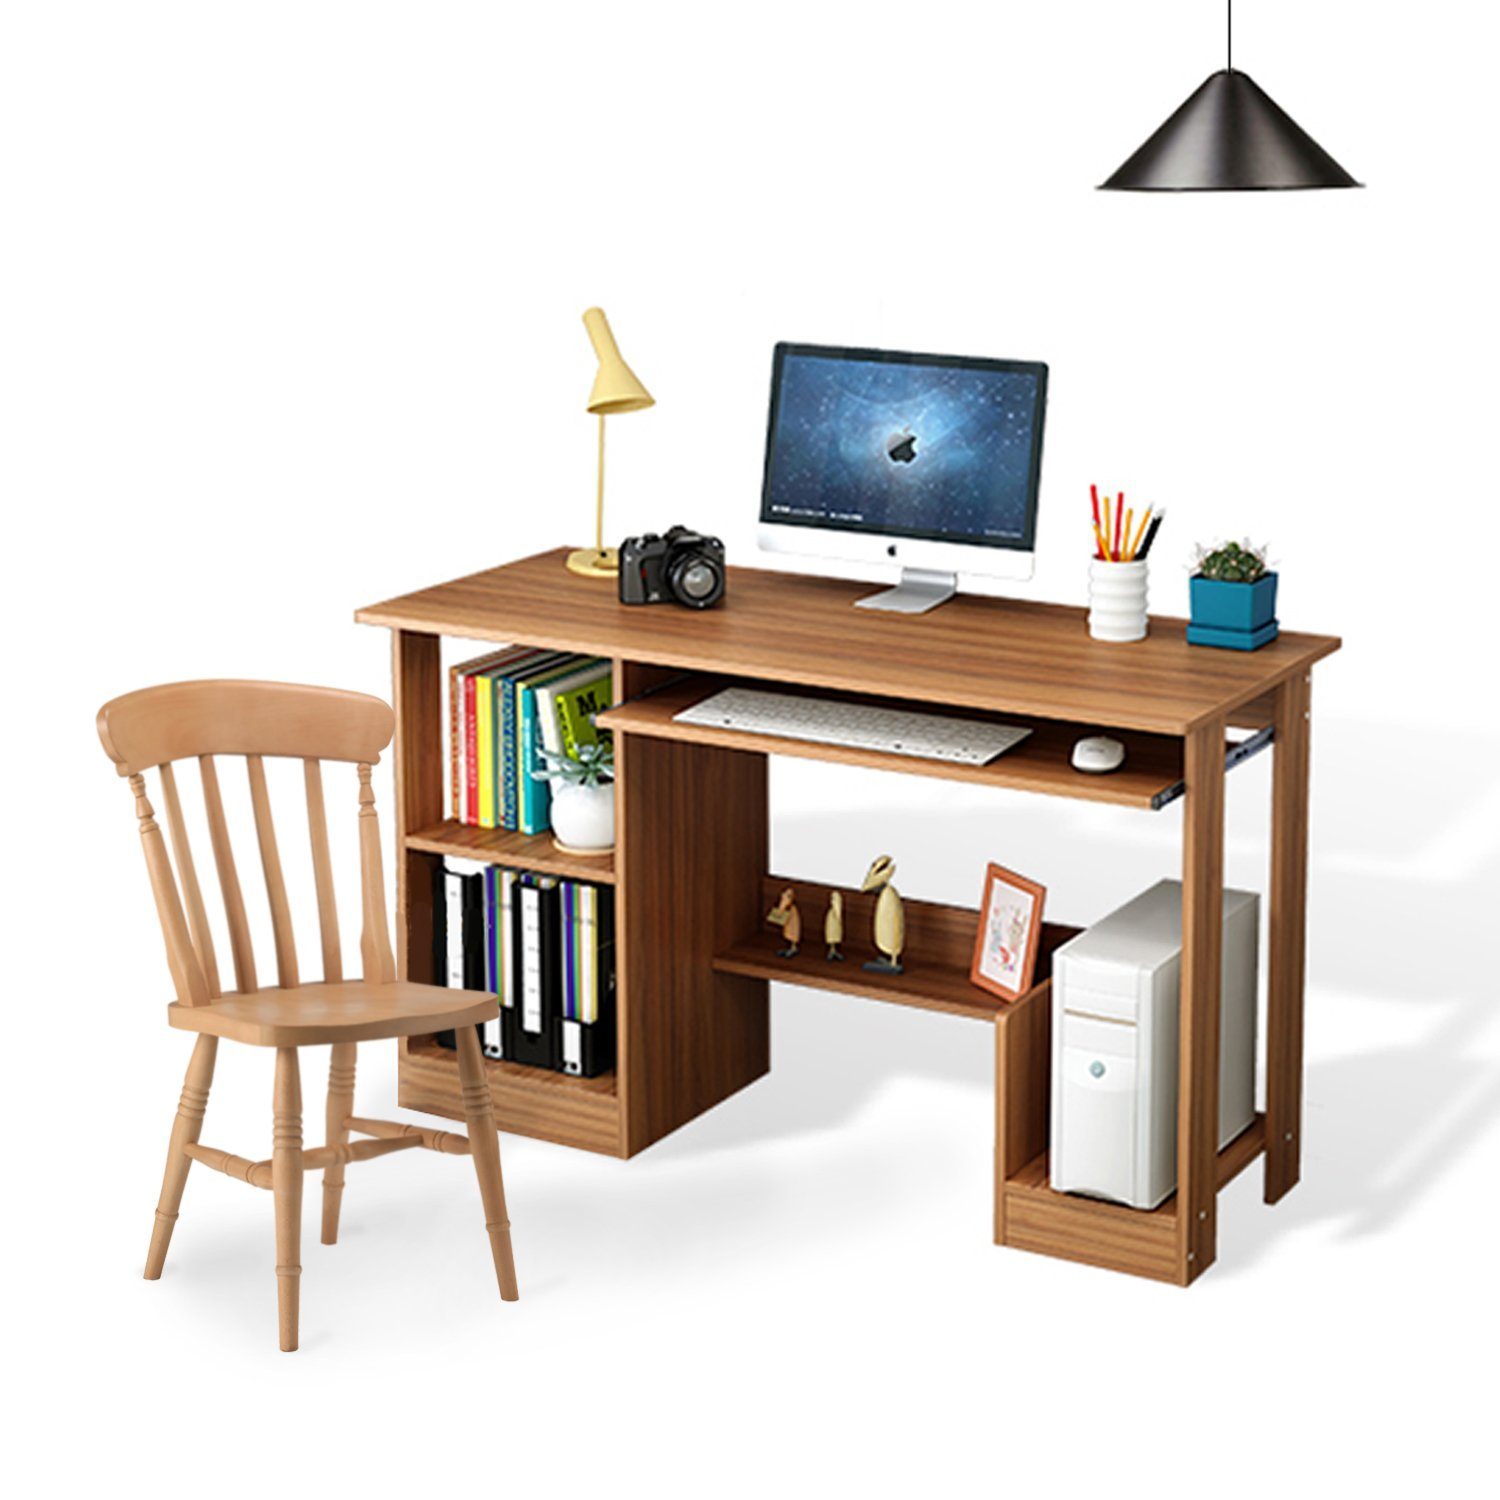 Jerry & Maggie - Computer Desk Table with Book Storage Shelf & Slide Keyboard Drawer - Lap Desk Personal Working Space for Office Living room Bedroom - Dark Wood Tone